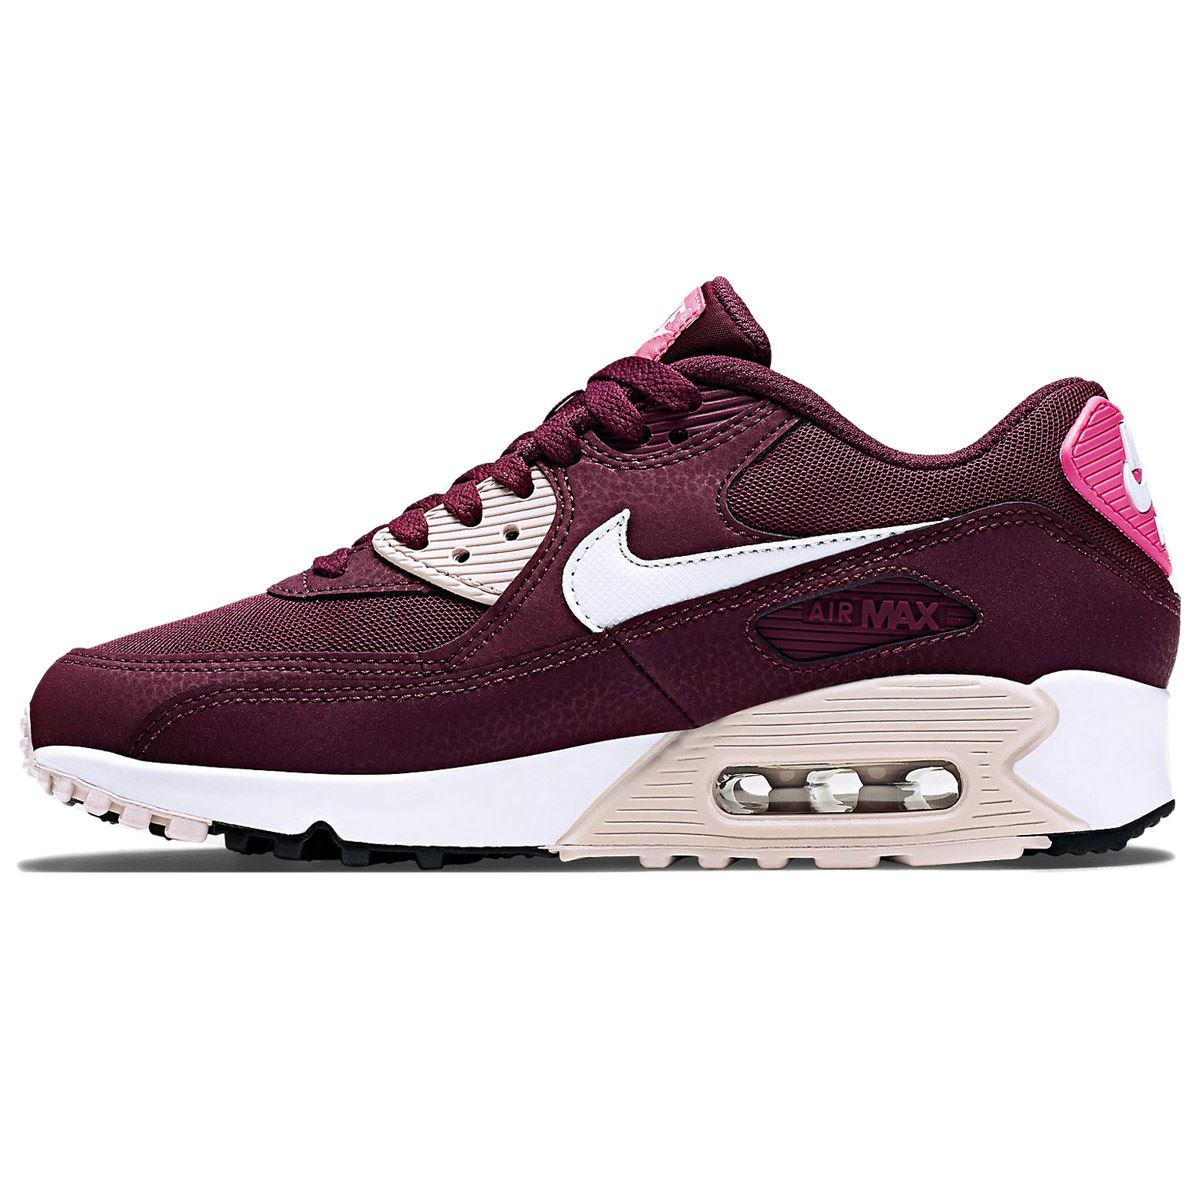 Air Max 90 Womens Maroon | Professional Standards Councils